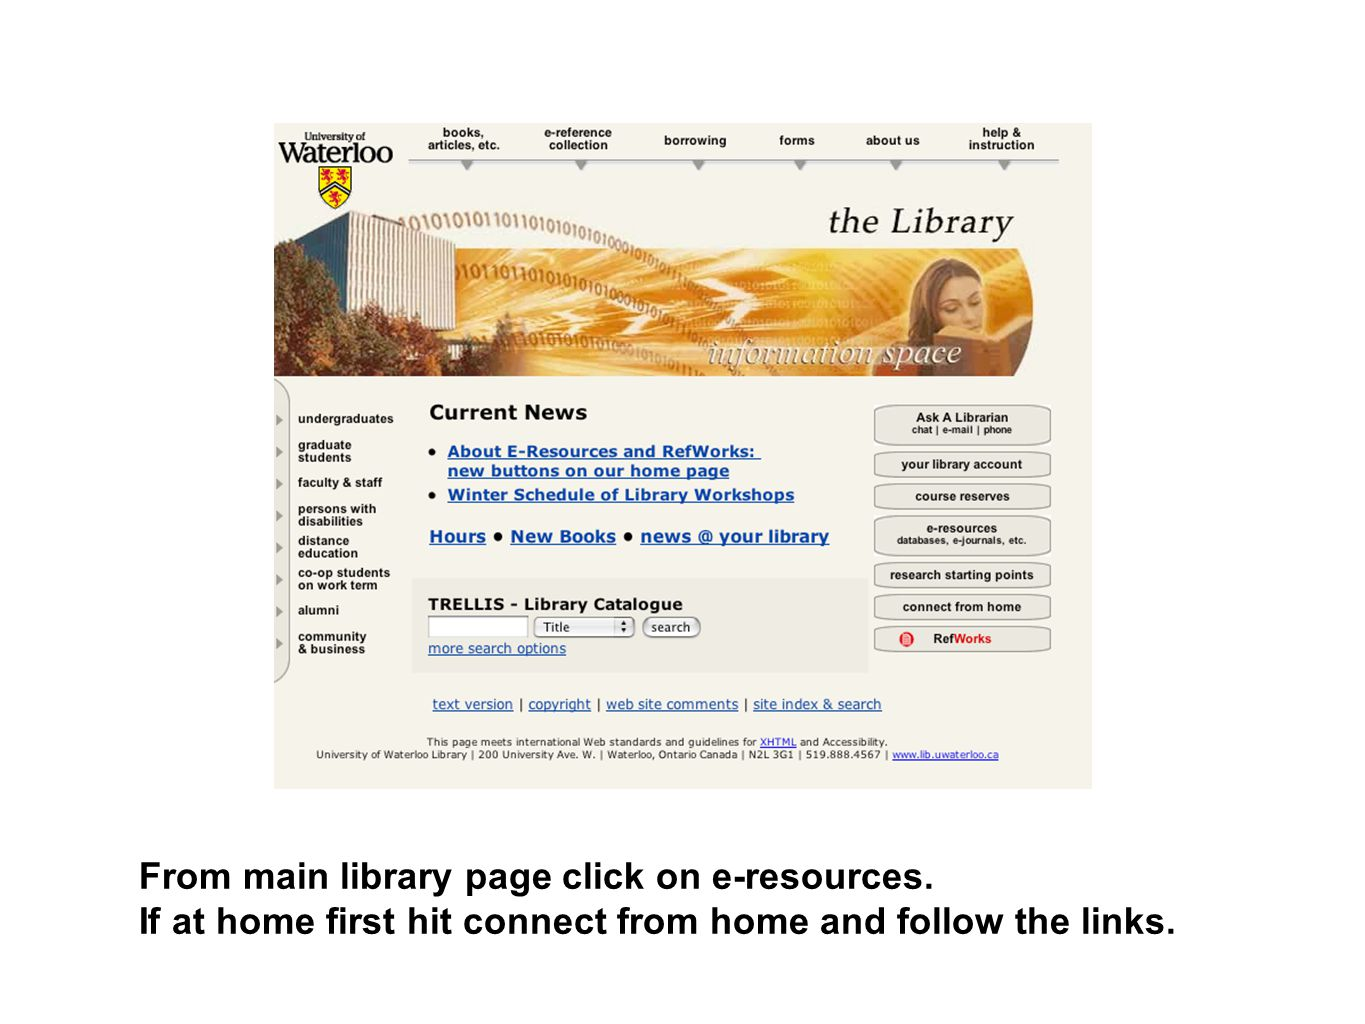 From main library page click on e-resources. If at home first hit connect from home and follow the links.